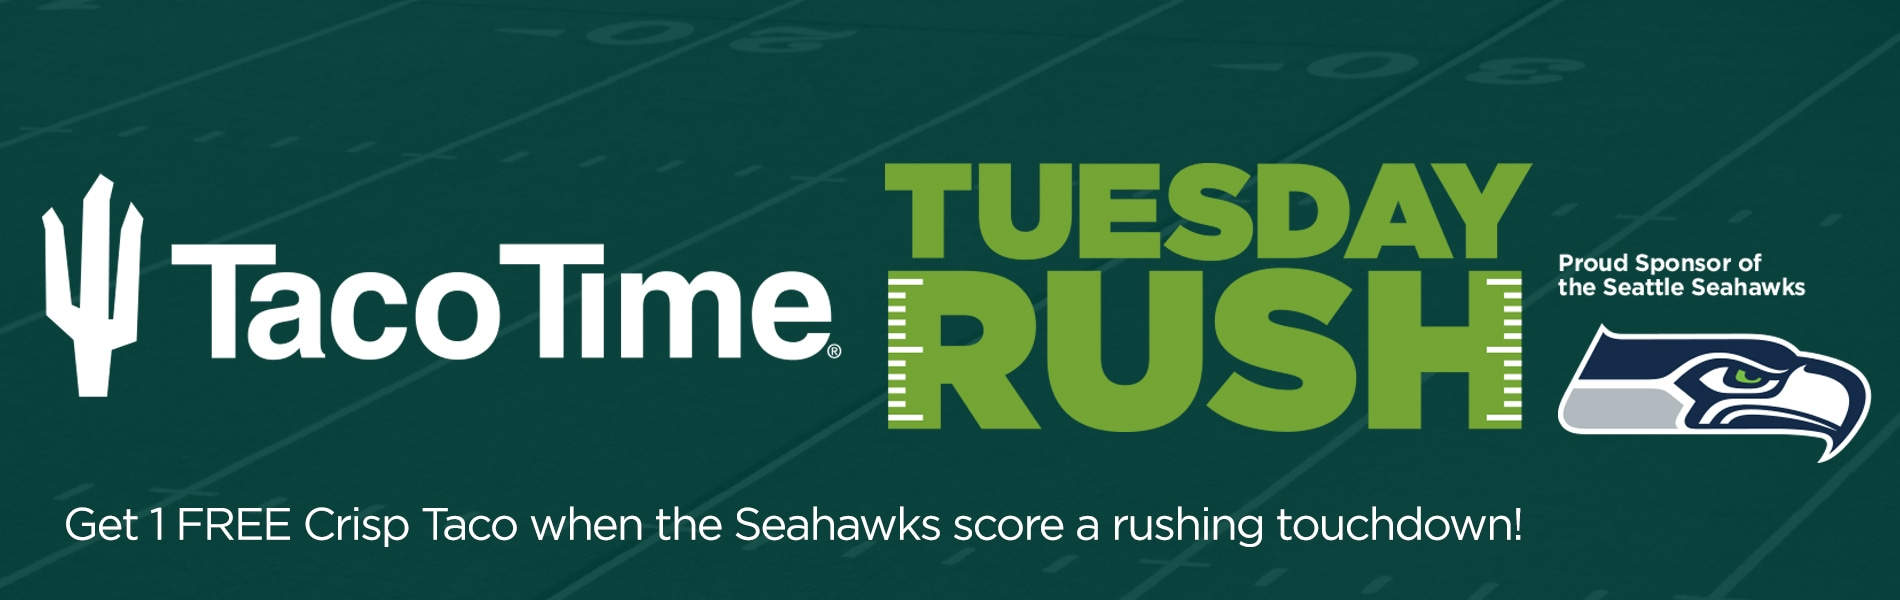 It's the Taco Time Tuesday Rush!